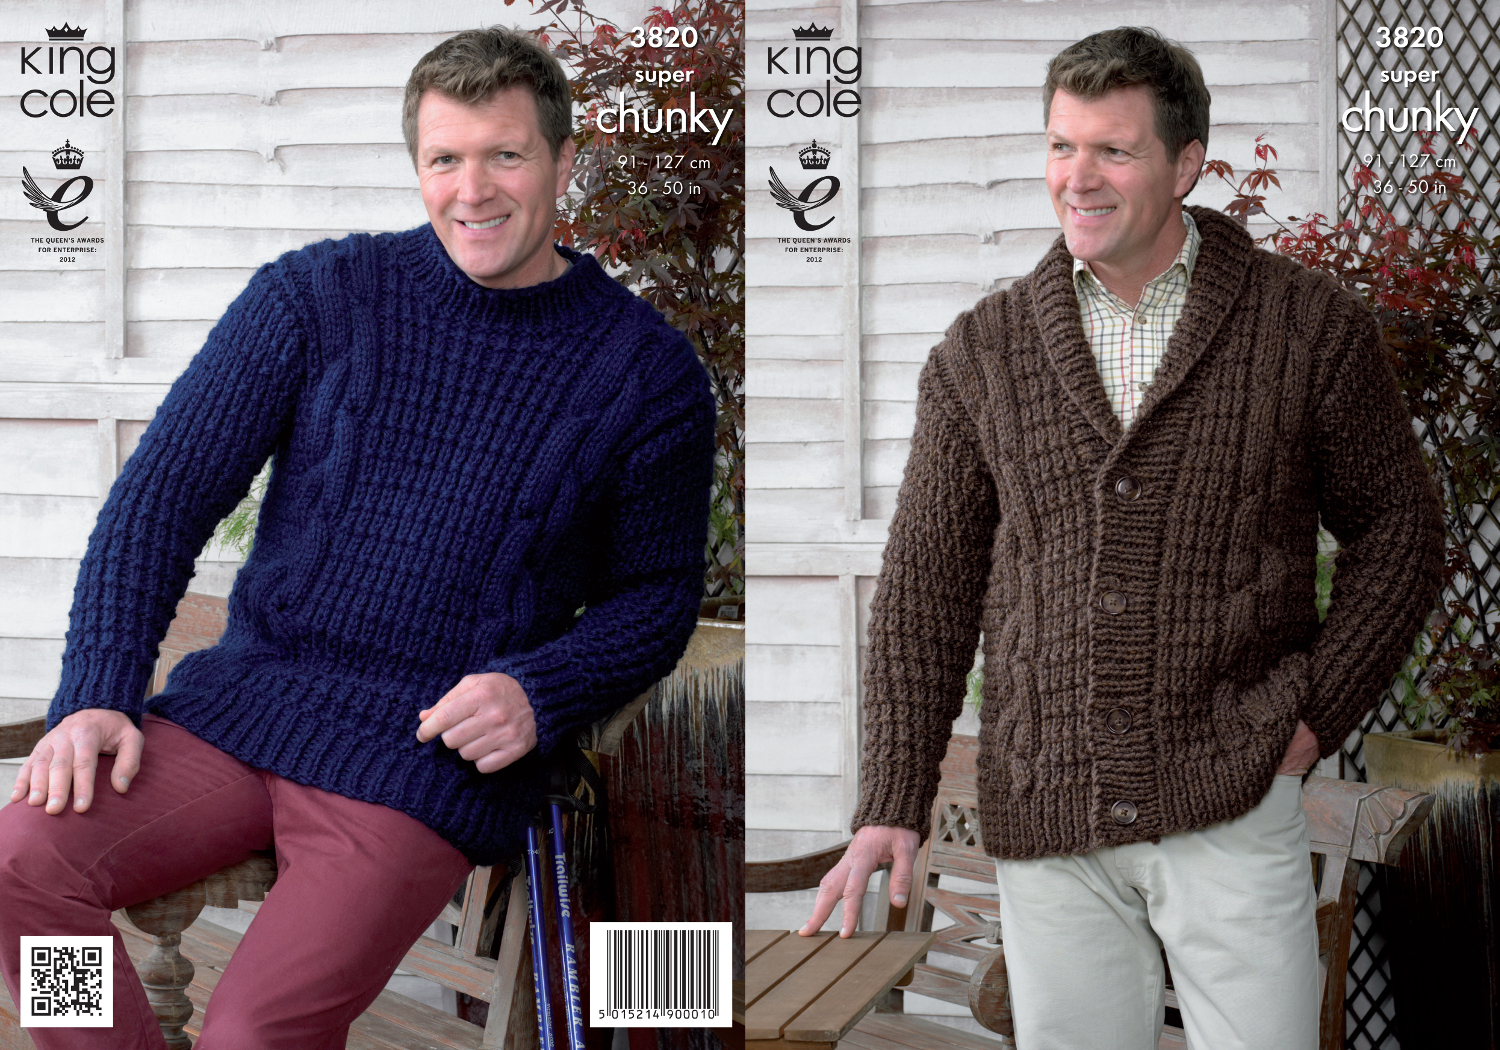 King Cole Mens Knitting Pattern Super Chunky Cable Knit Cardigan Sweater 3820...